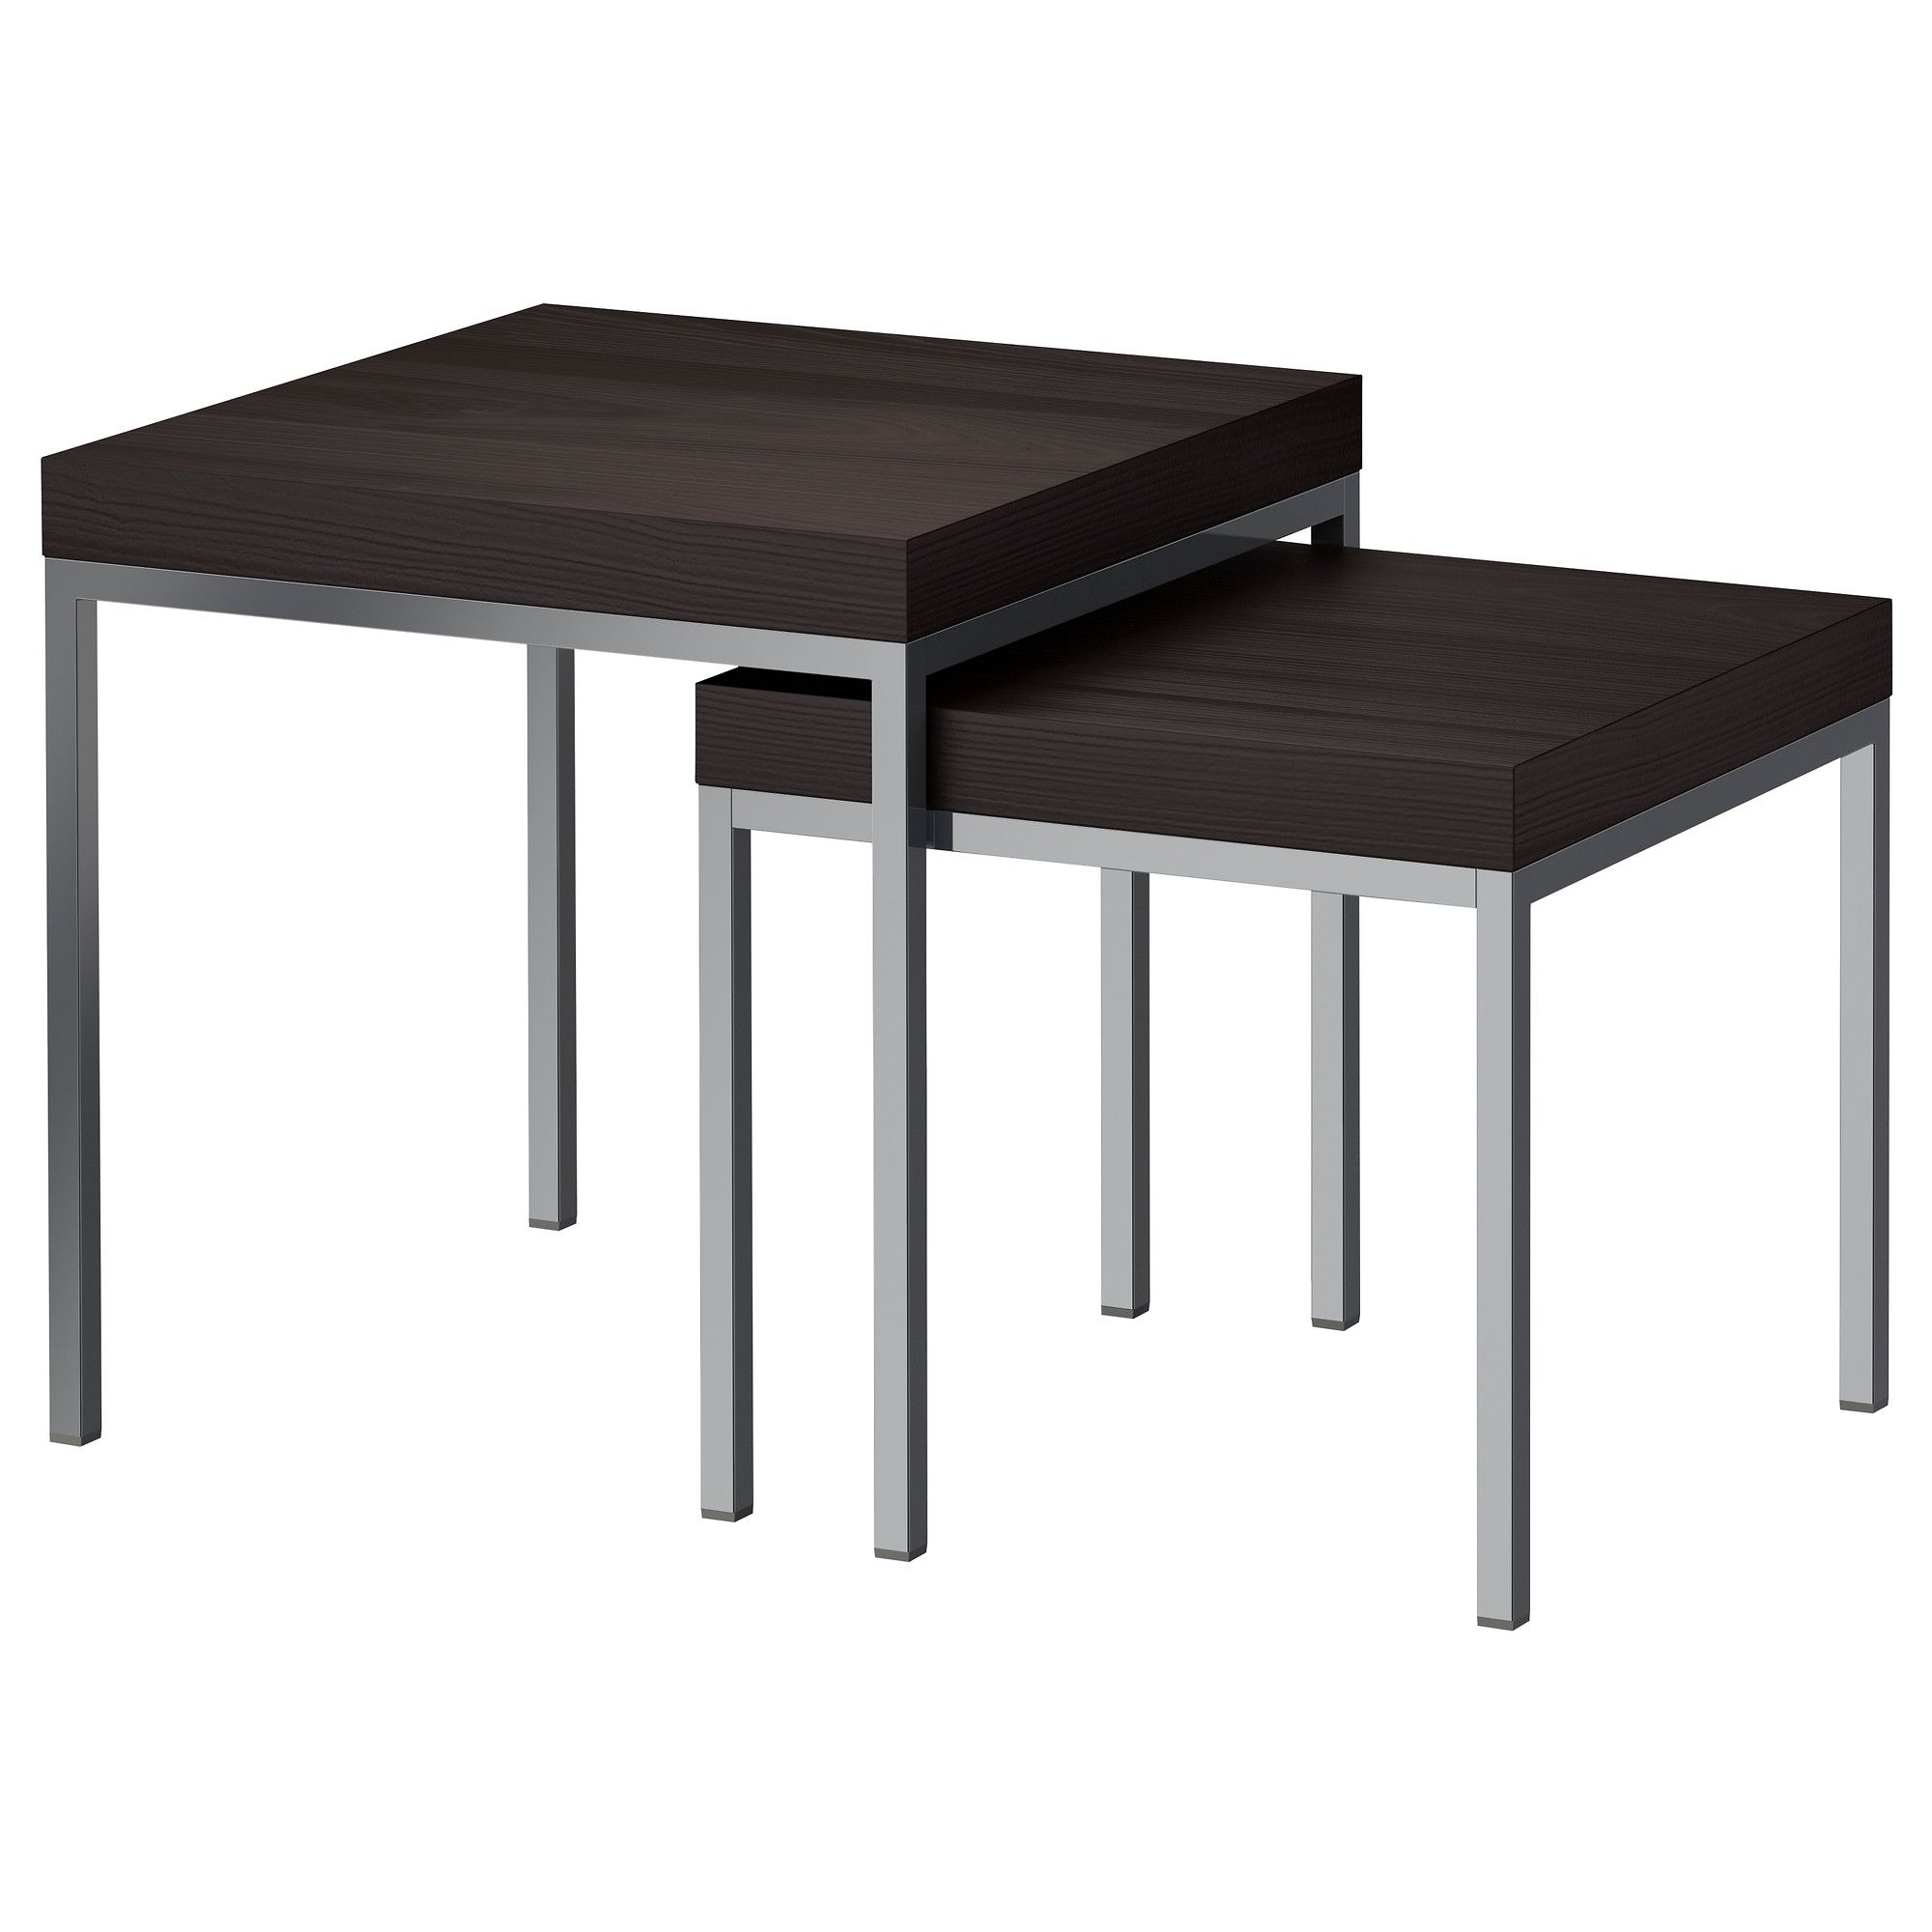 en us ikea table side lack end black products tables catalog